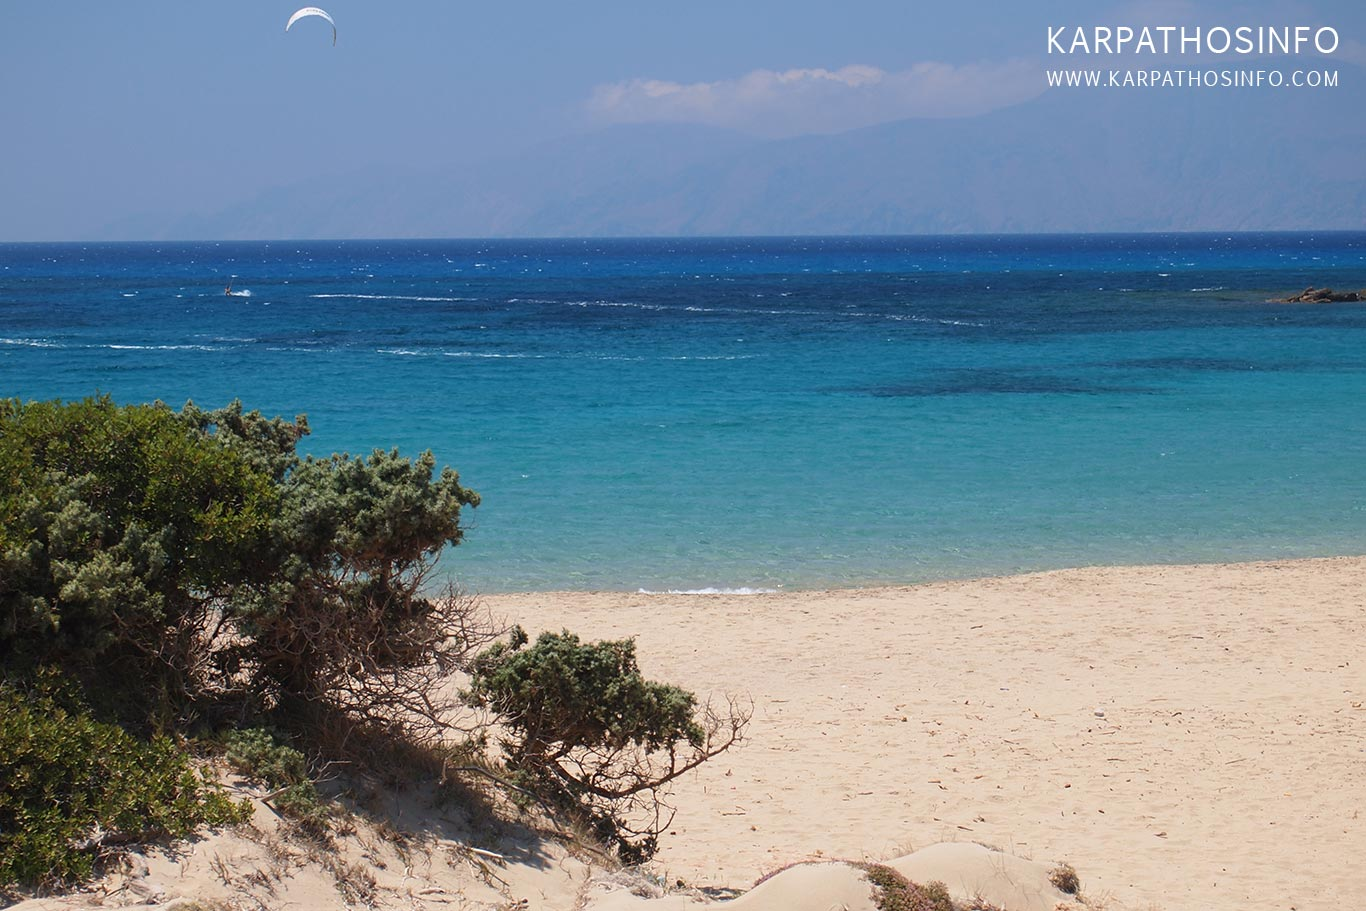 Karpathos airport beaches, Greece